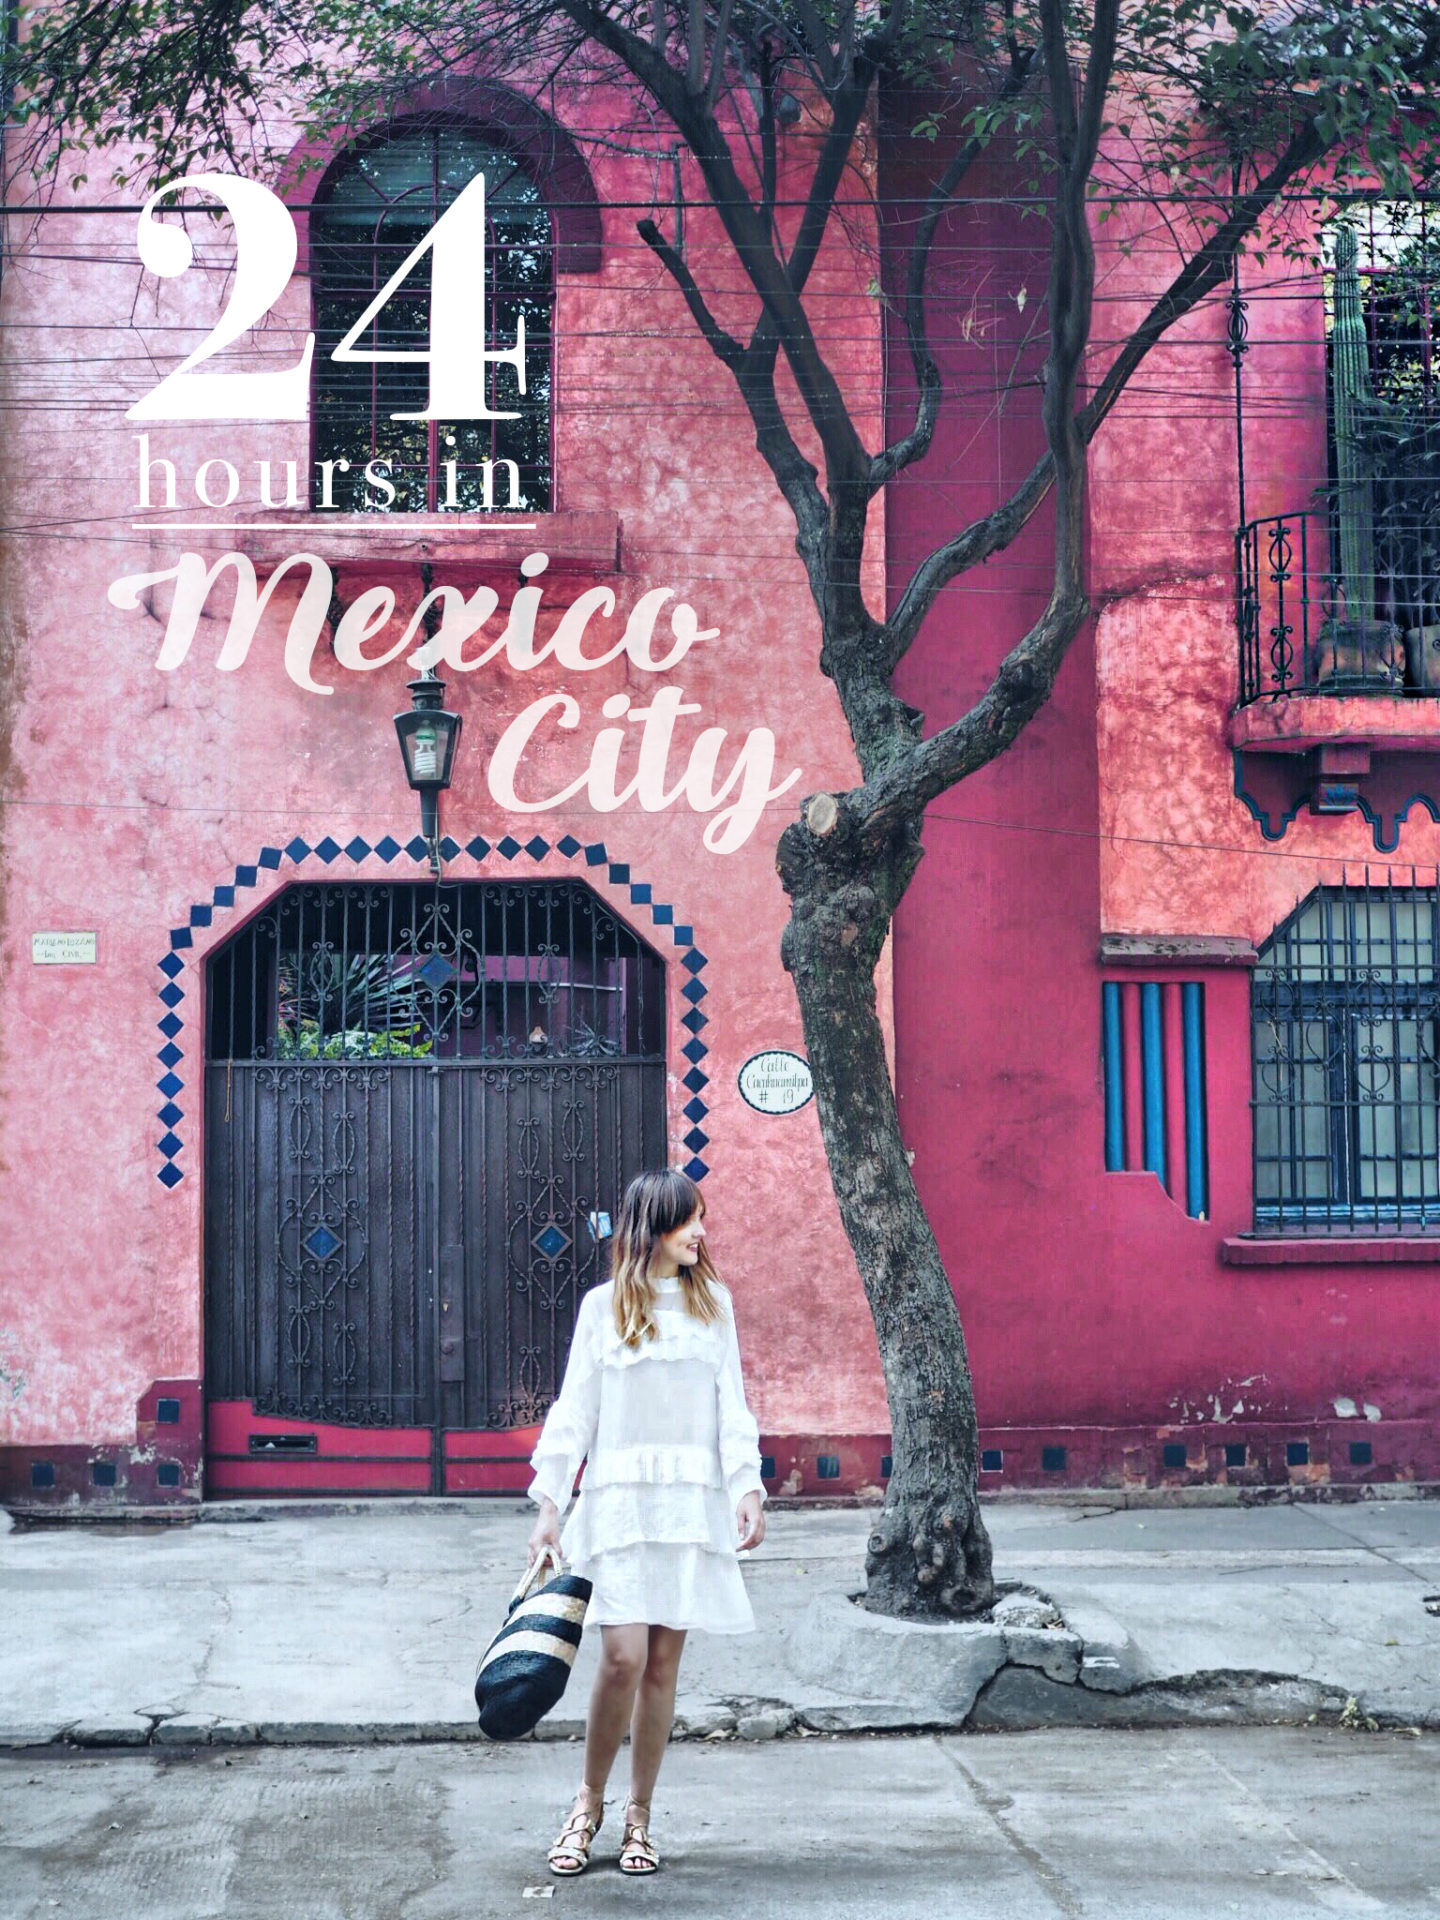 How to spend 24 hours in Mexico City